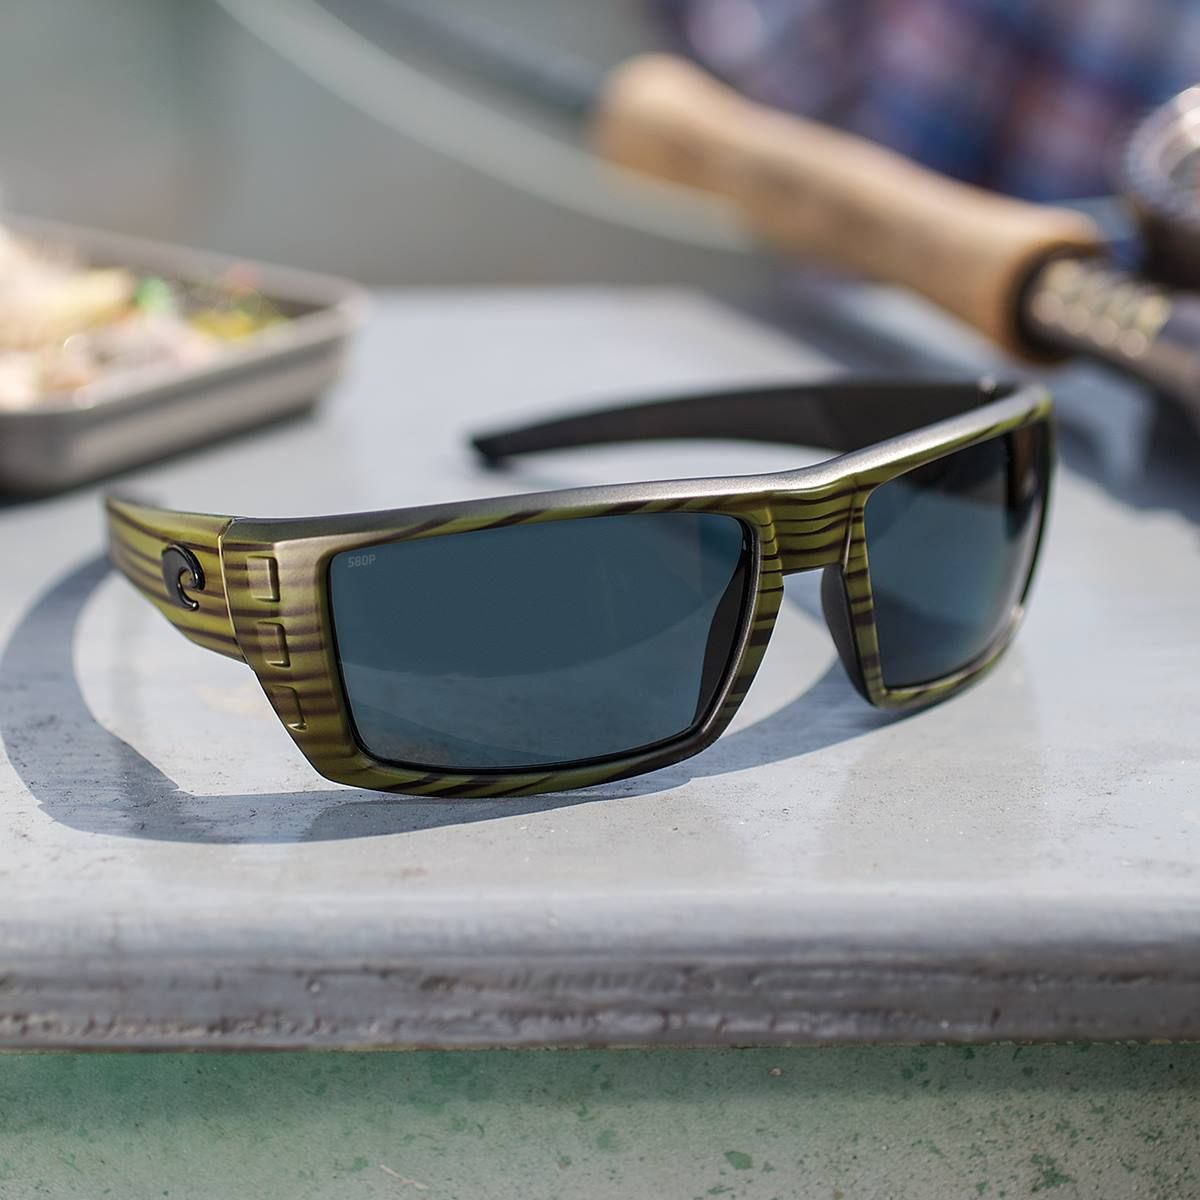 70e53fd42022 Inspired by historic ships, teak wood is timeless to those born on the  water. Click to shop Rafael and all Costa wood grain frames in classic and  modern ...